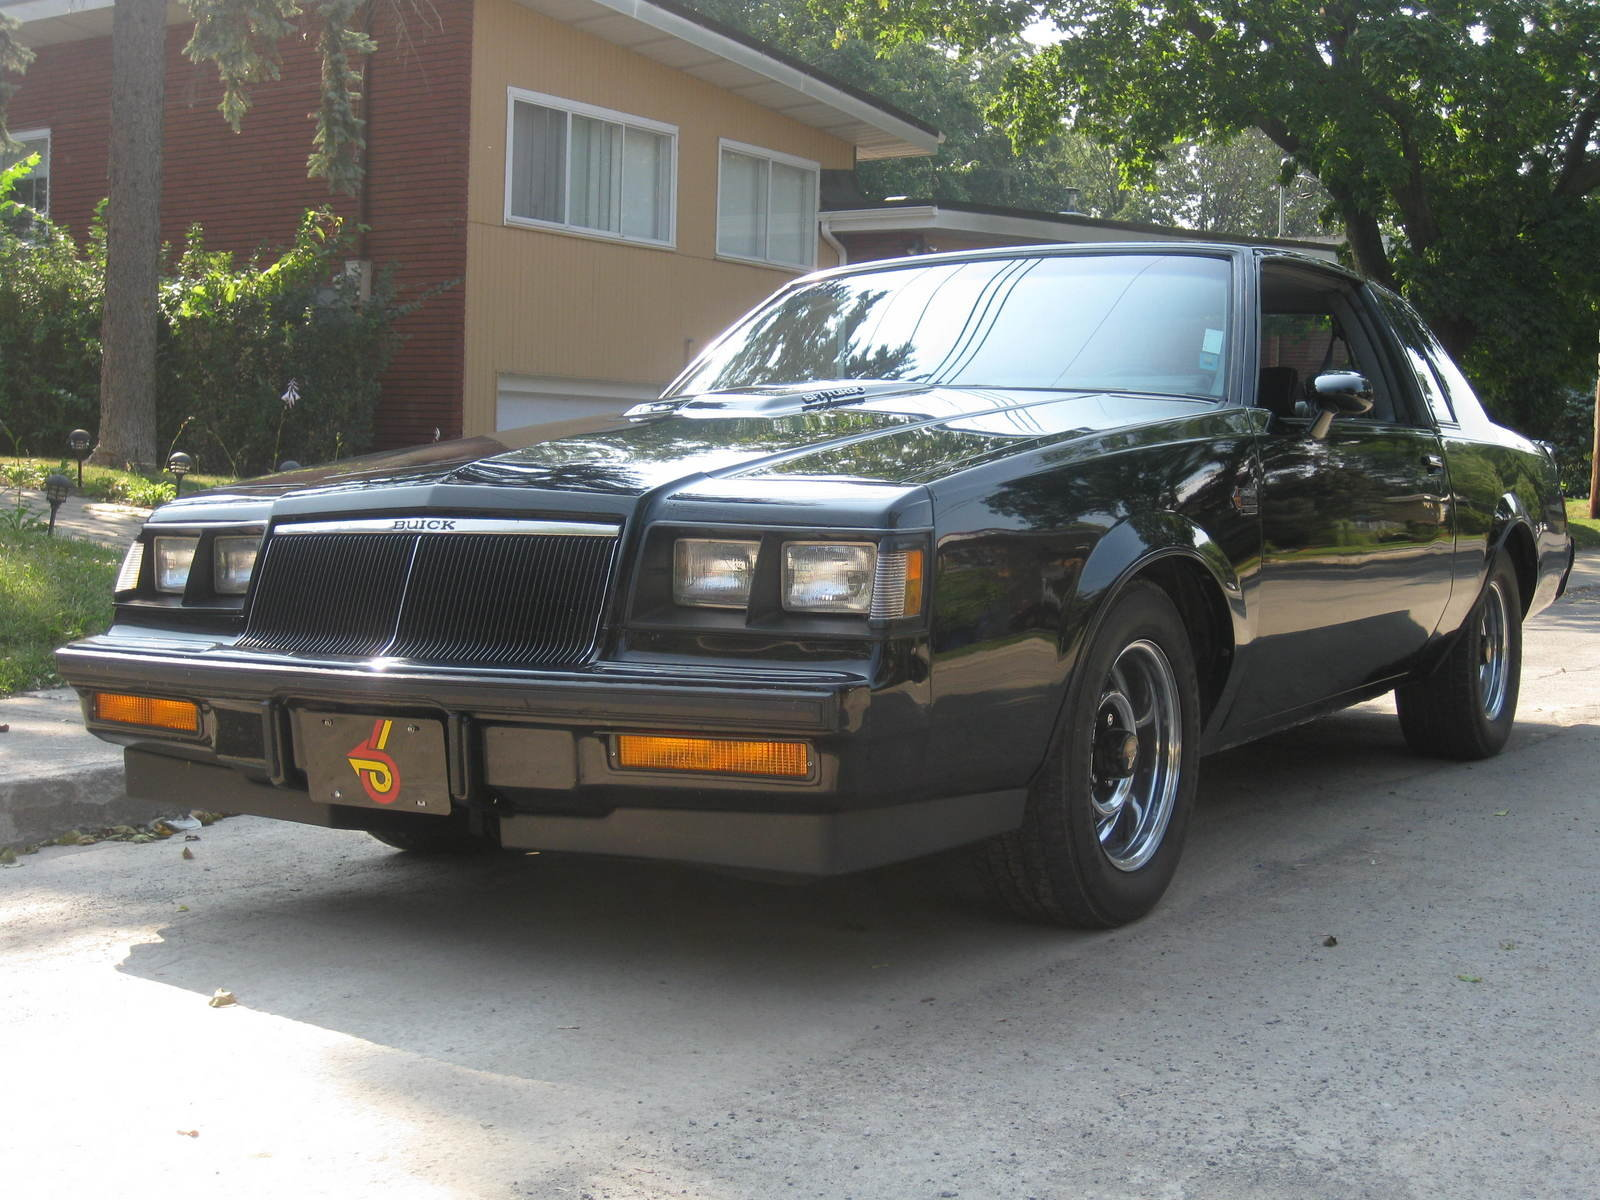 1982 1987 buick grand national picture 485850 car review top. Cars Review. Best American Auto & Cars Review